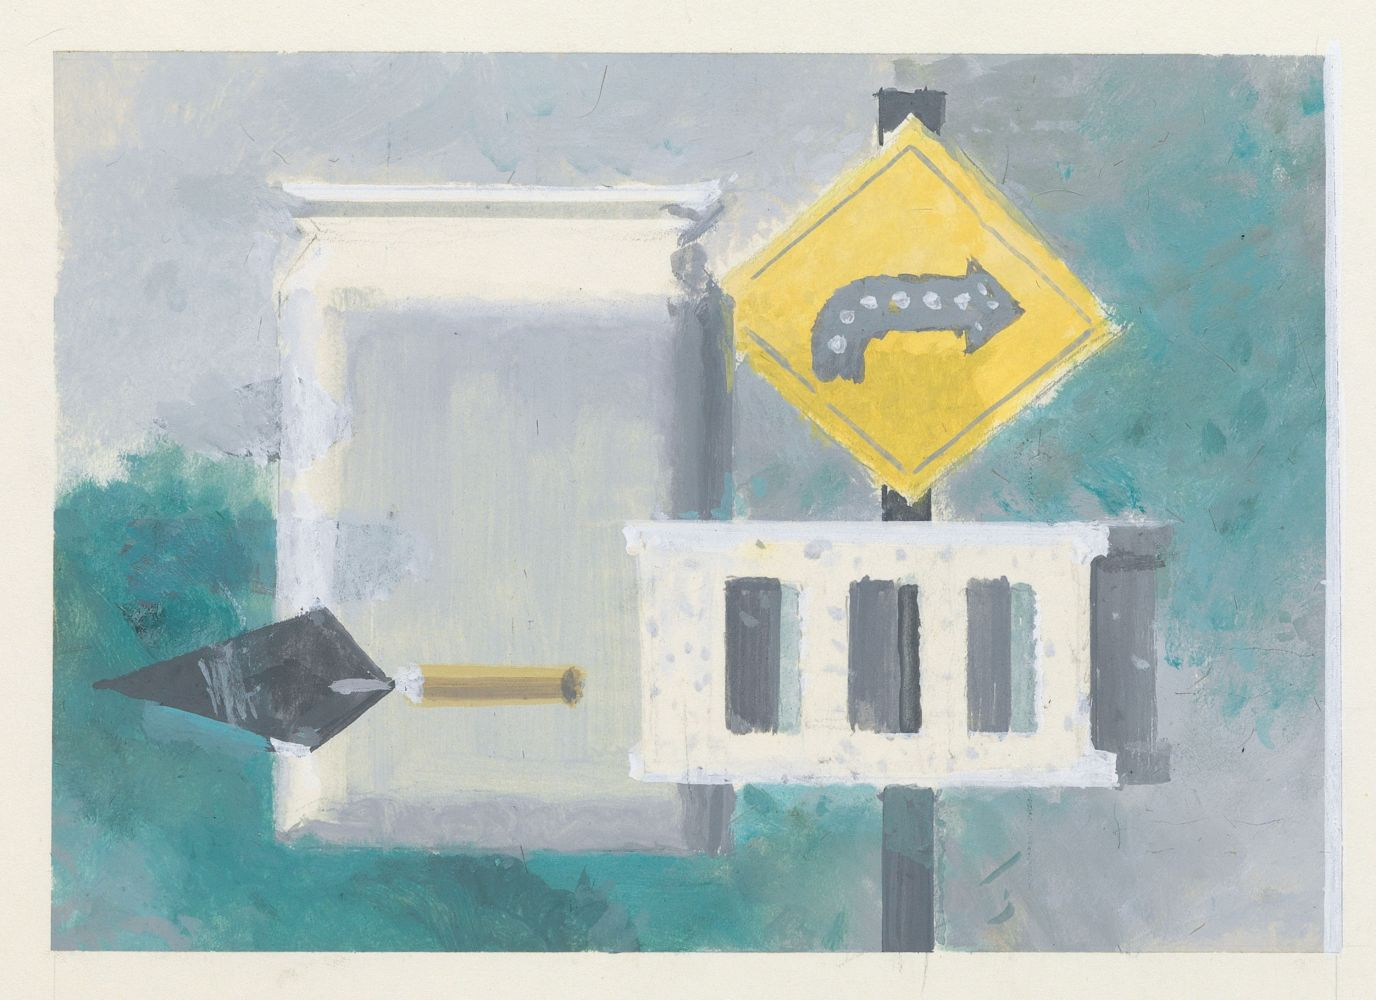 Walter Murch, Directions, 1951-57, gouache and pencil on paper, 9 3/8 x 11 3/8 inches